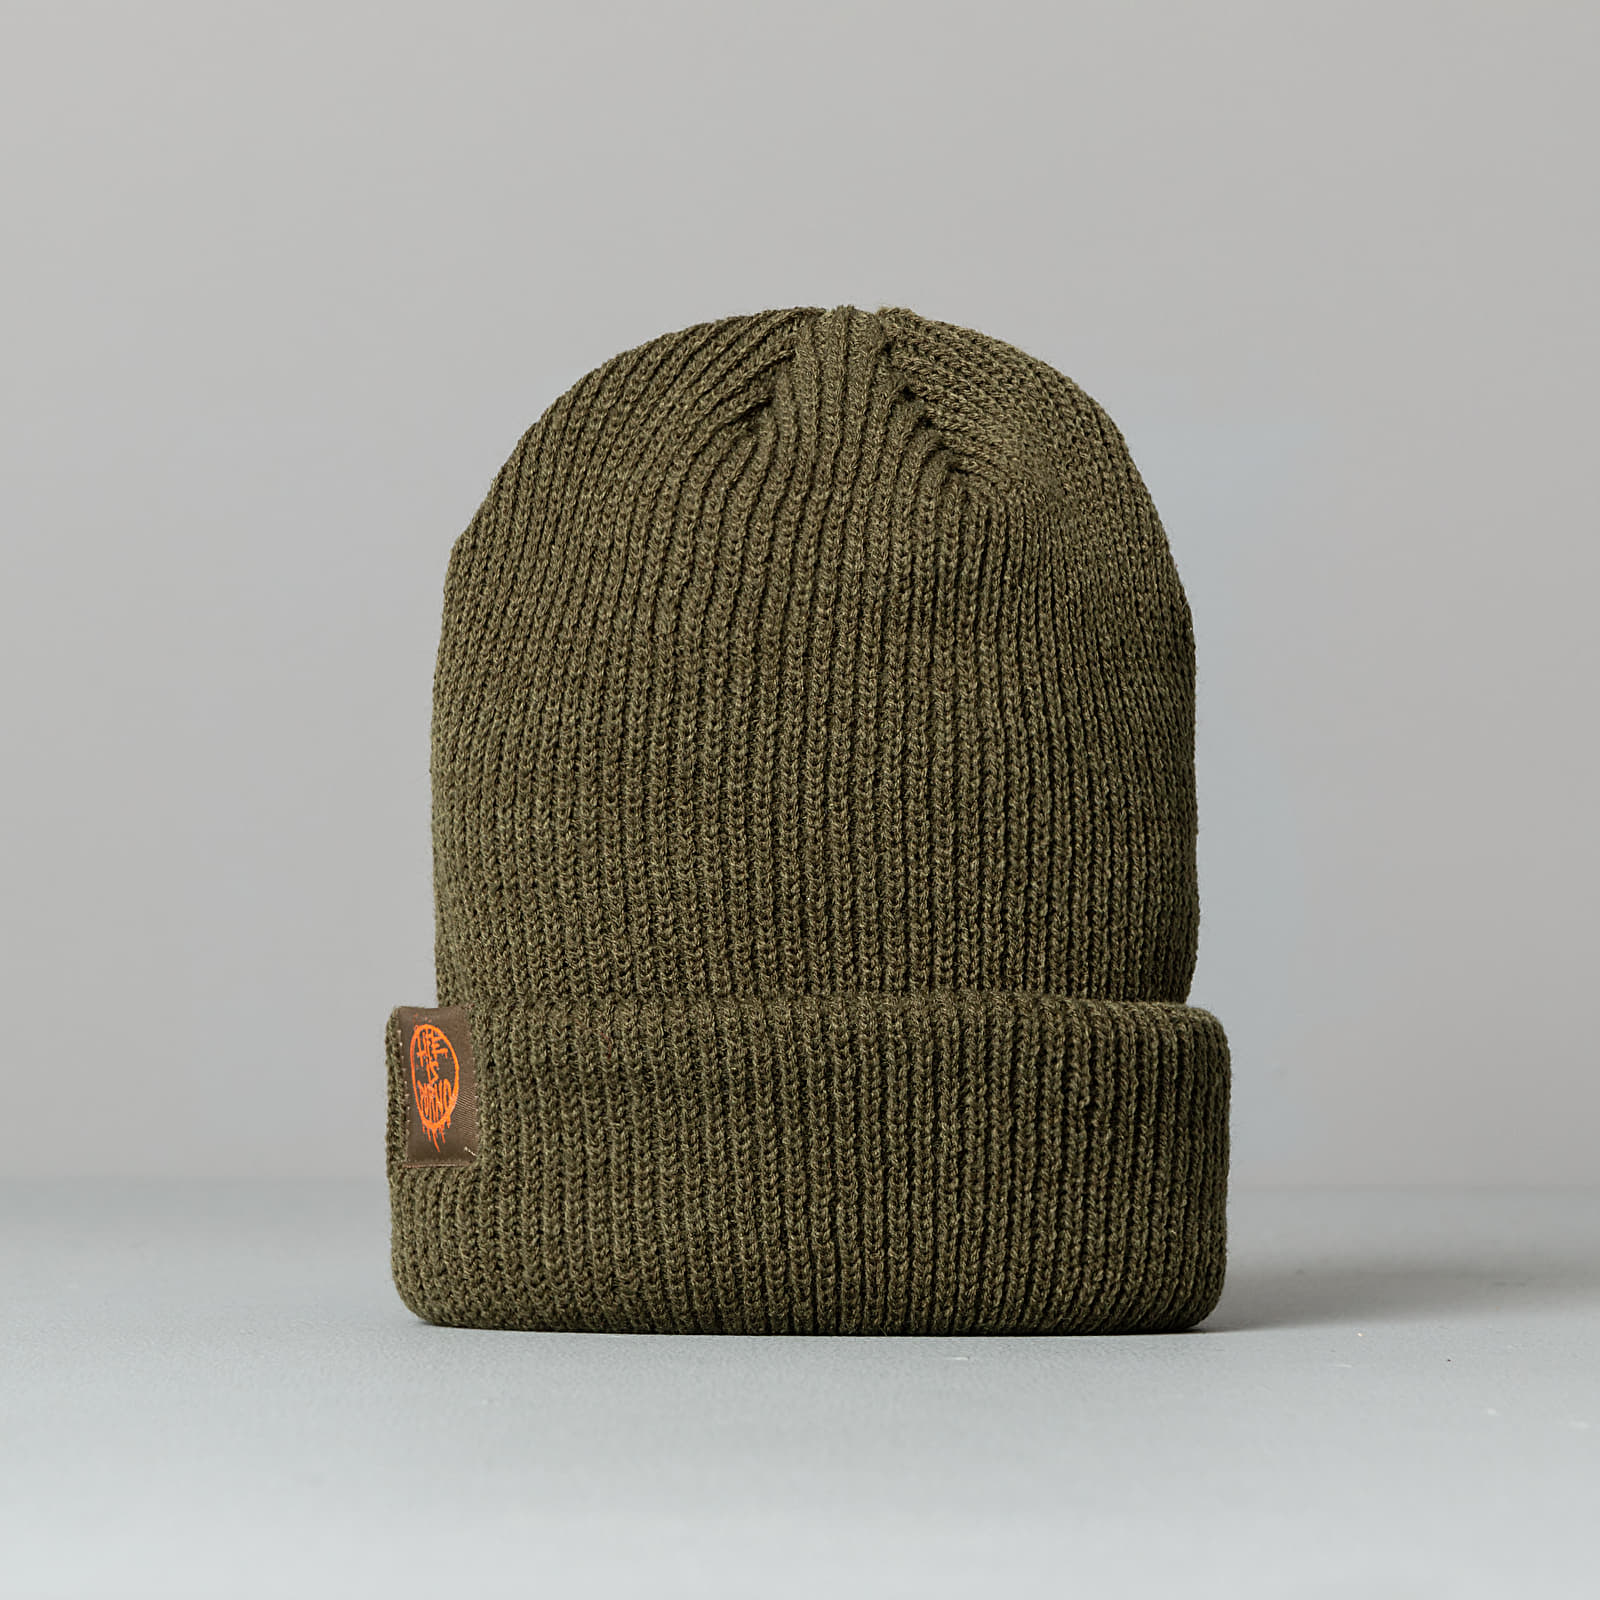 Hats LIFE IS PORNO Fisherman Beanie Olive